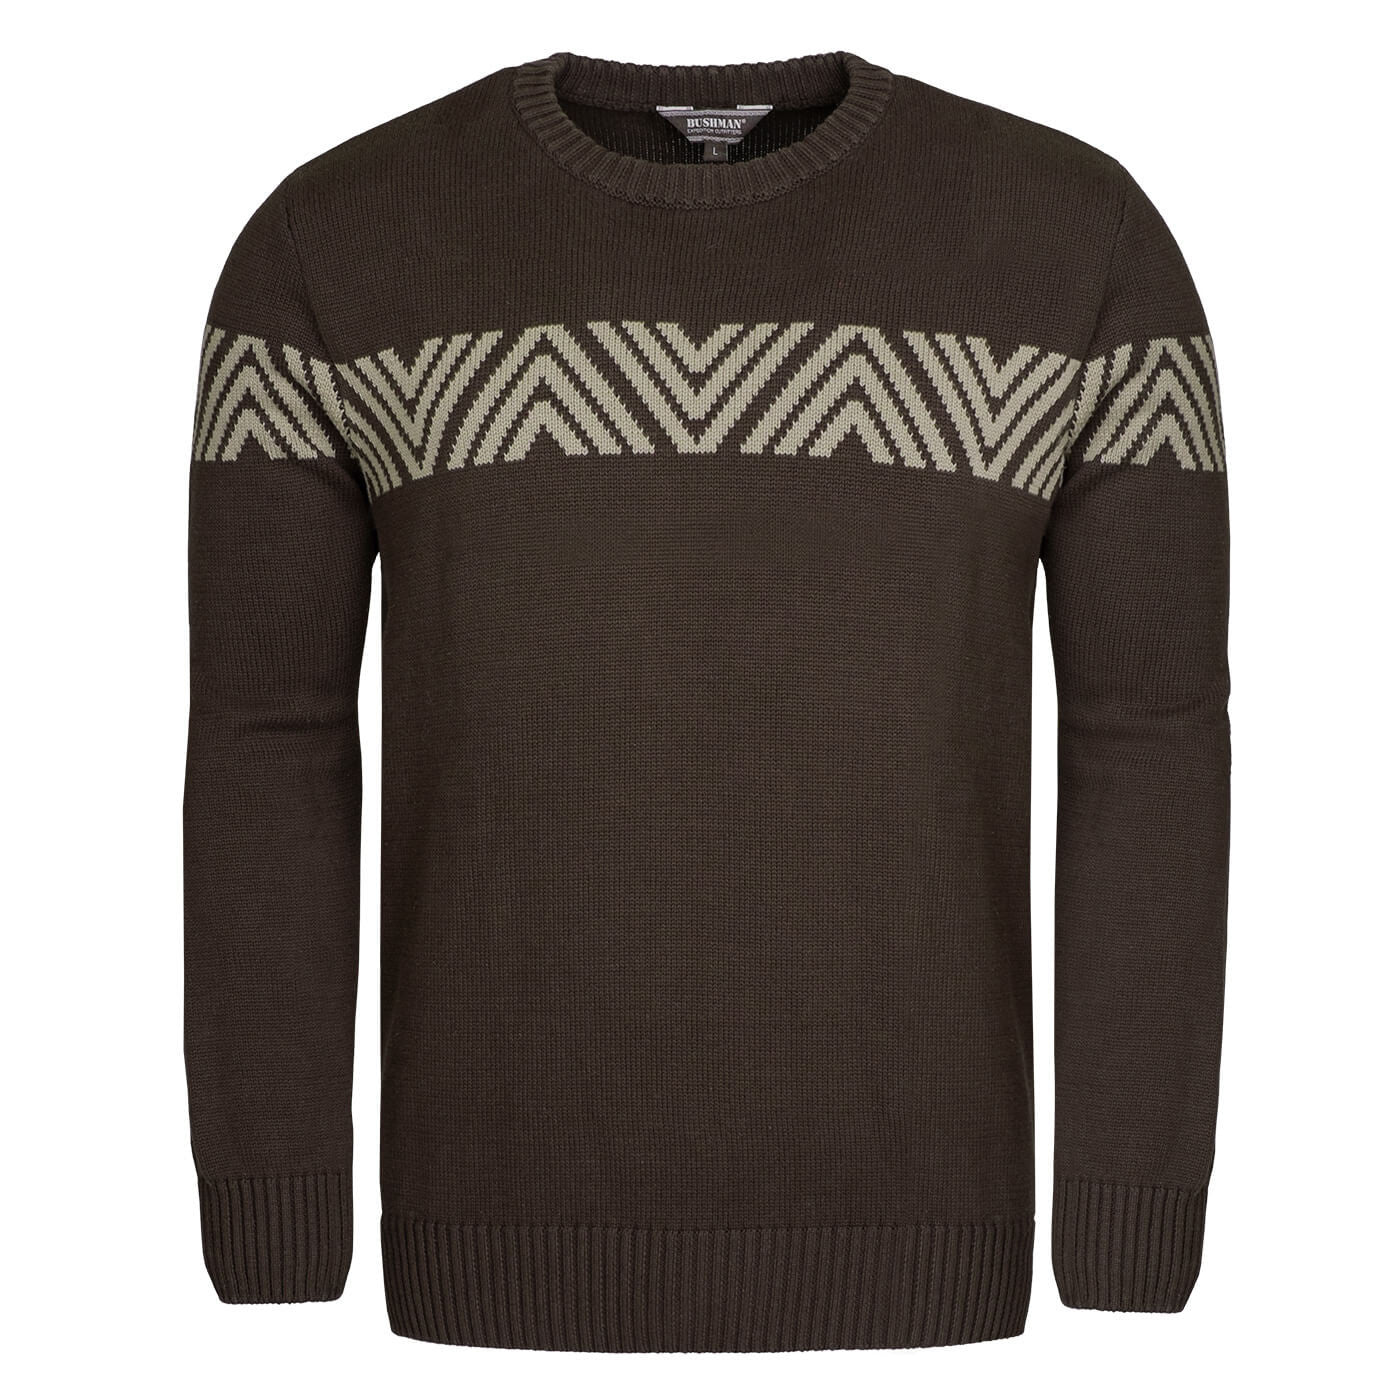 BUSHMANSHOP MERITT MEN'S BROWN KNIT COTTON NORWEGIAN PULLOVER SWEATER